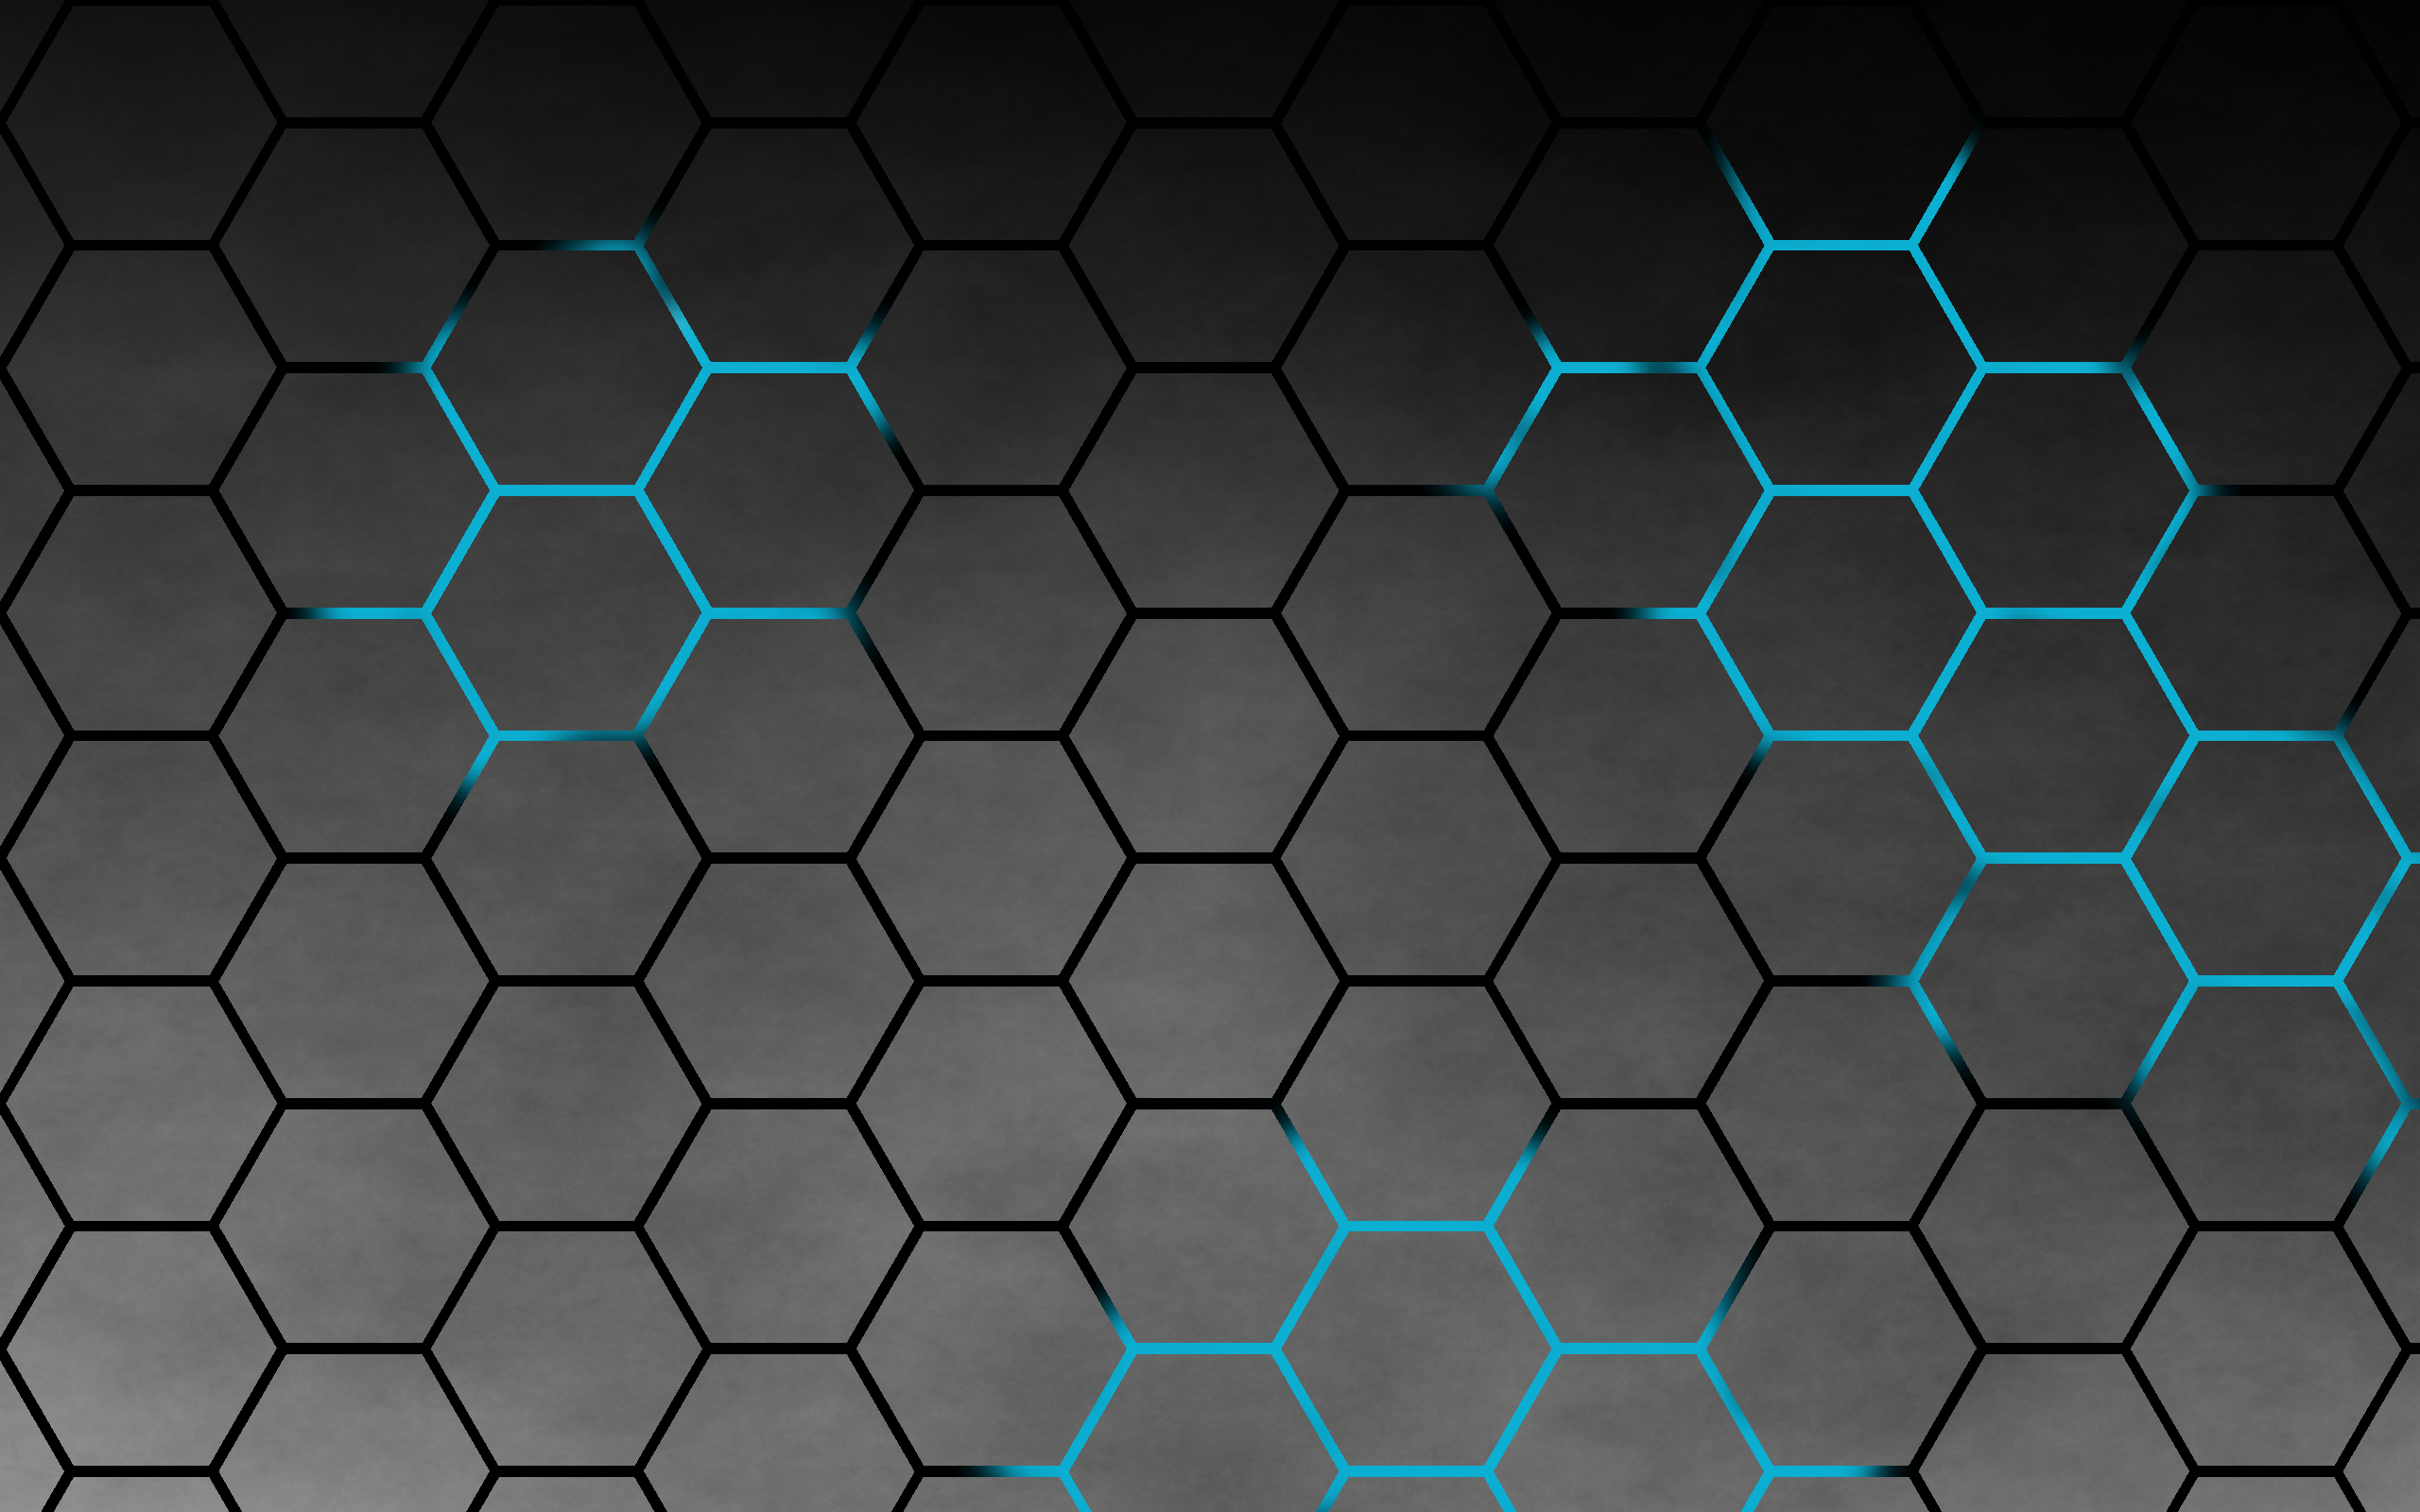 Getting Started With Hive - Towards Data Science